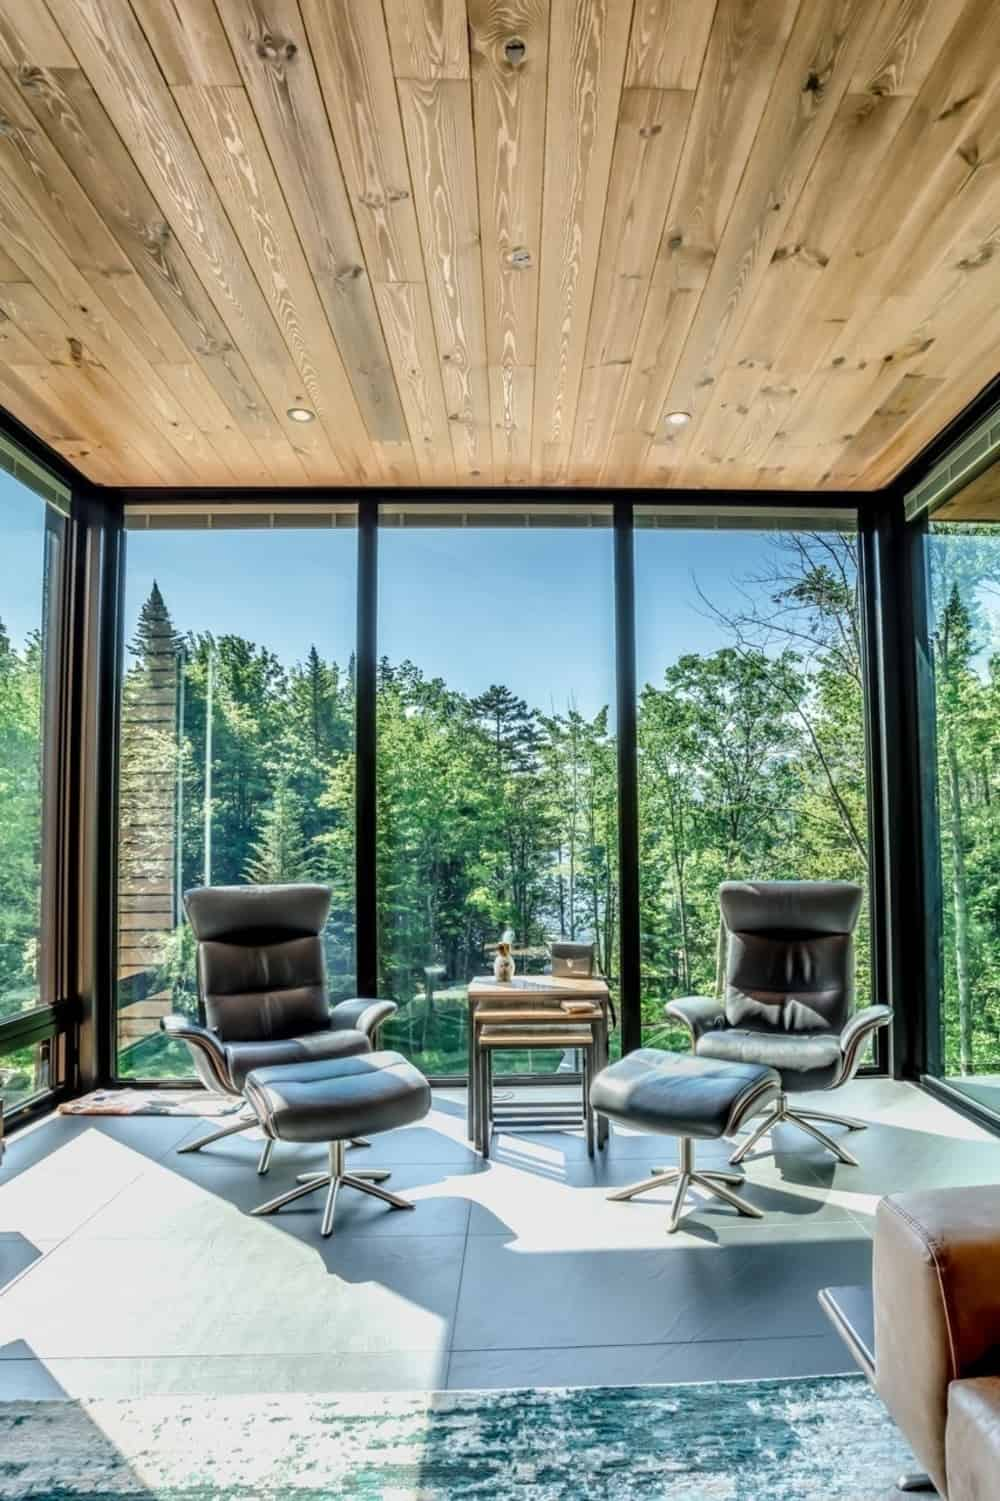 The living room also features a seating lounge near the tall glass windows great for viewing the beautiful outside landscape. Photo Credit: Dominic Boudreau